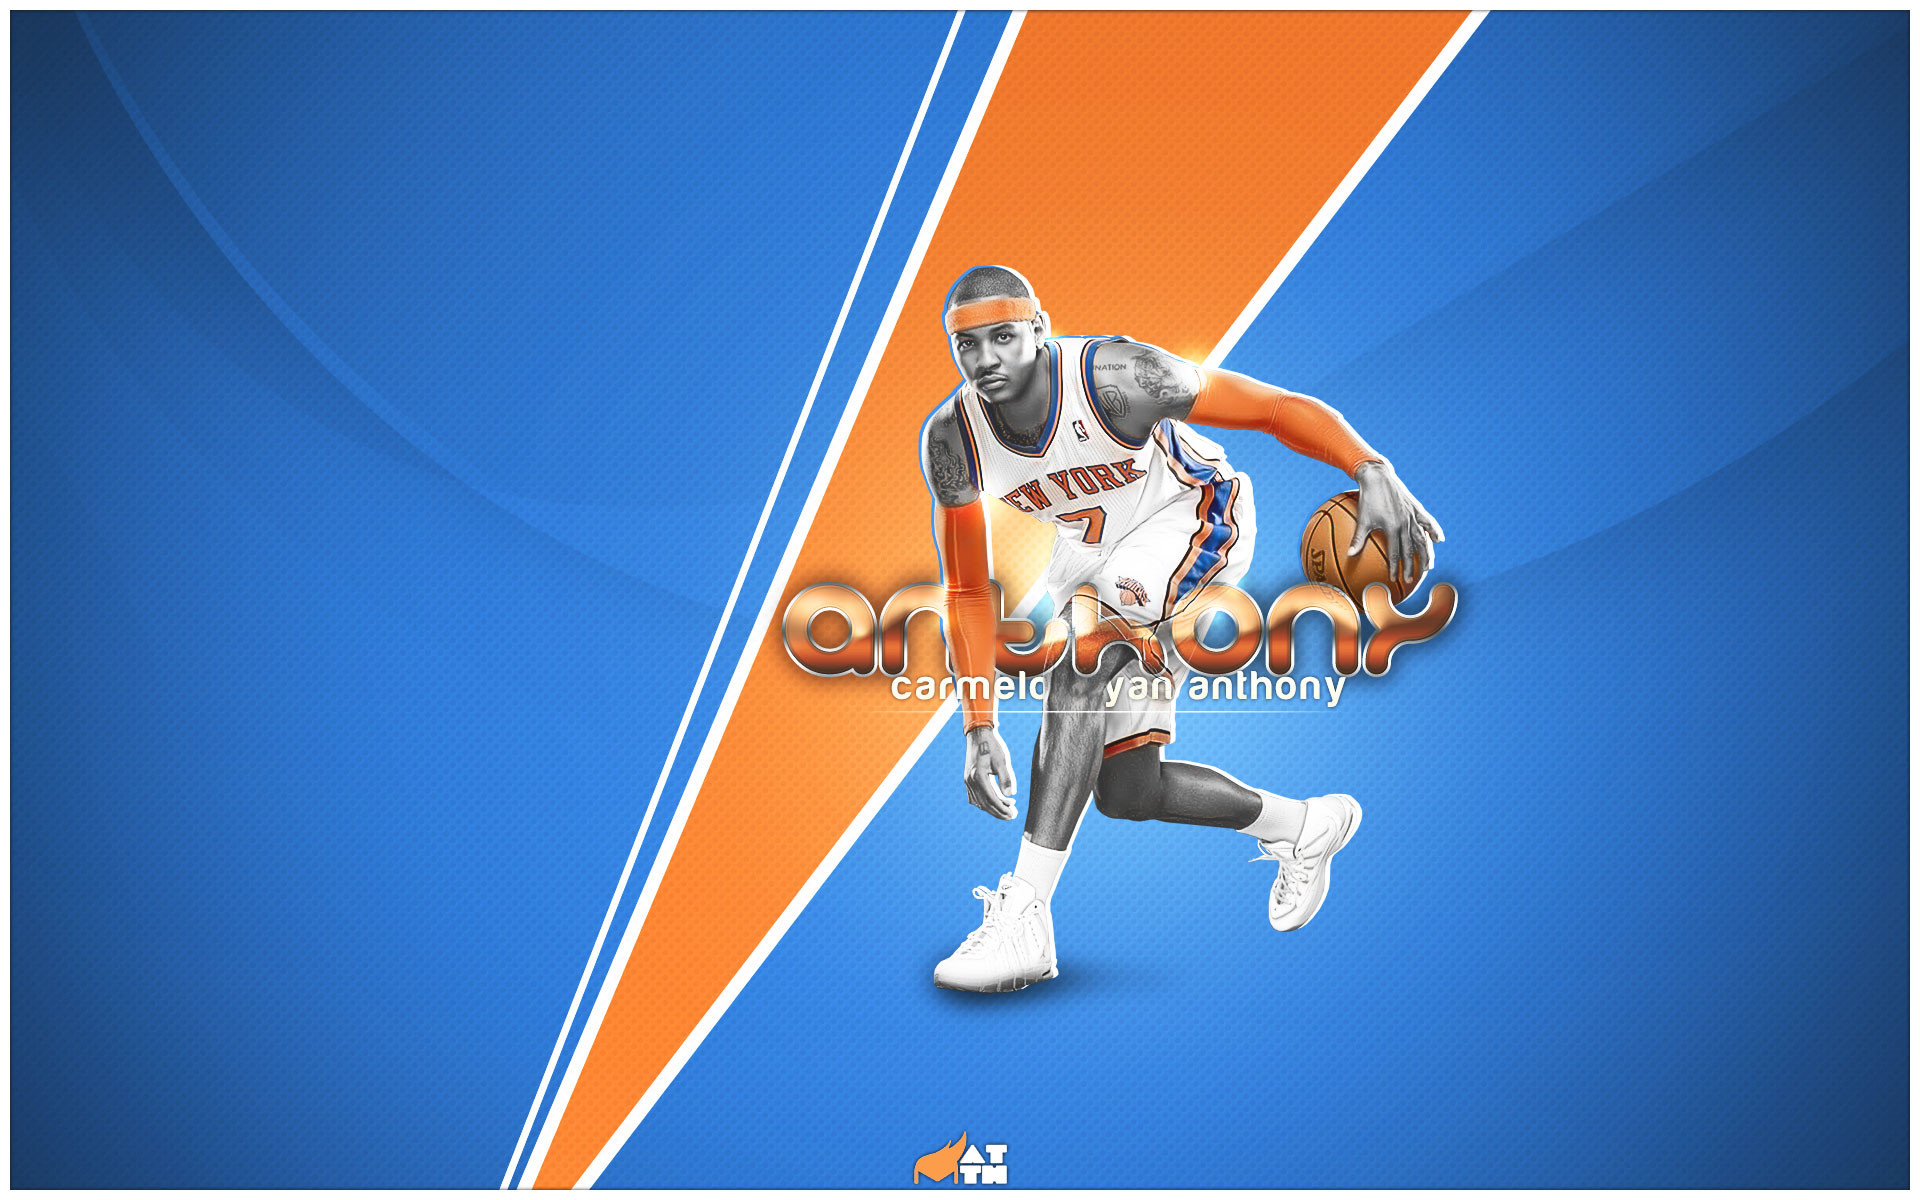 1920x1200 Carmelo Anthony Wallpaper - With Knicks-Colored Background and His Name  Printed, Sure It